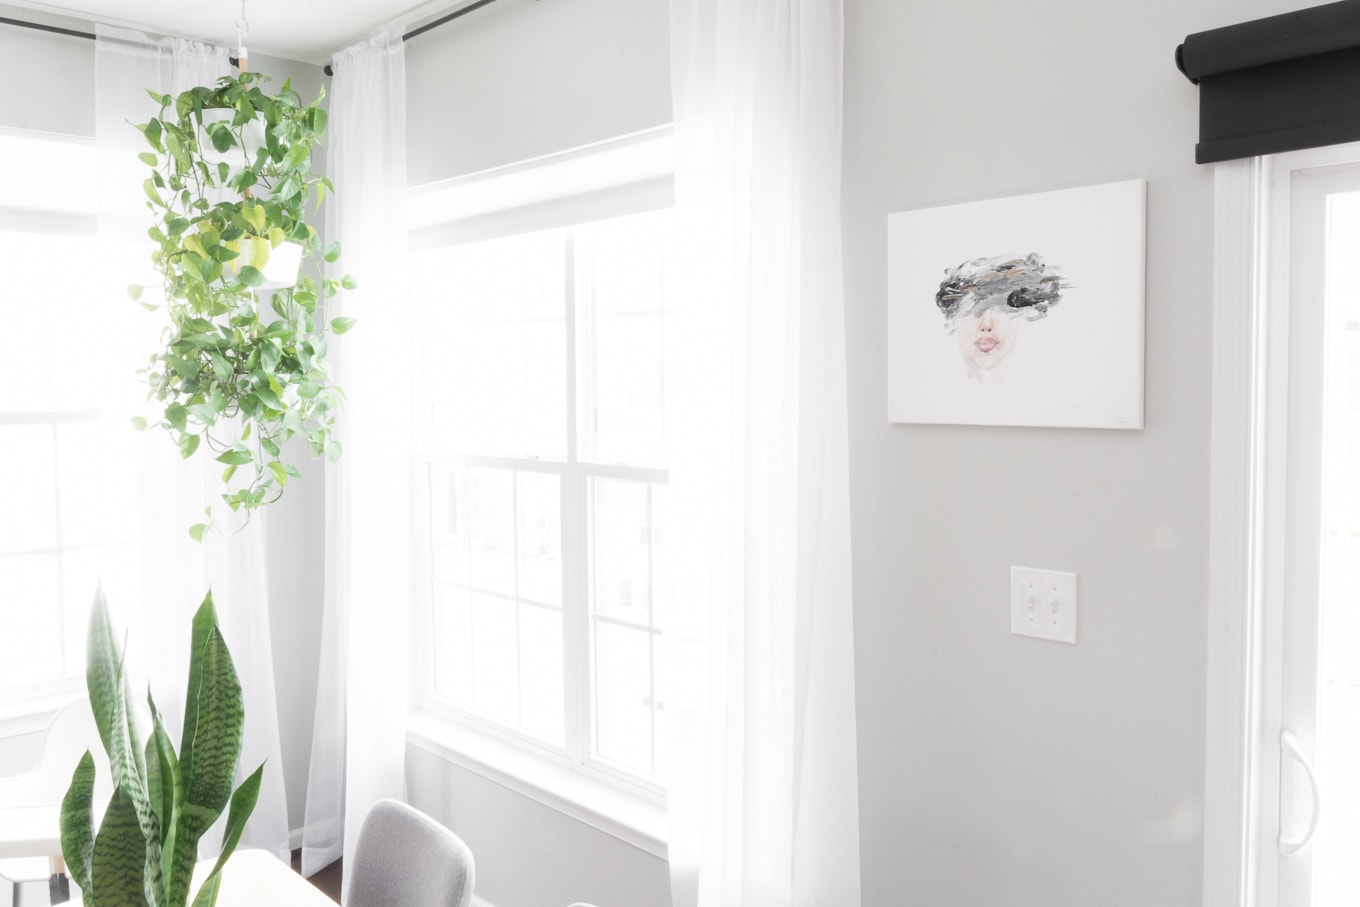 Simple, modern dining room. Our modern minimal townhouse for a family of three (and two kitties!). Looking for townhouse decorating ideas? Check out our home tour. #townhomes #townhouse #townhousedecoratingideas #townhouseideas #modernhomedecorlivingroom #modernhomedecor #kidfriendlyhome #townhouseinspiration #openconcept #townhomelayout #townhouselayout #diy #modernhomedecor #scandanavianinterior #nordicinspired #scandanavianinspired #scandiinspired #houseplants #hangingplants #reposegray